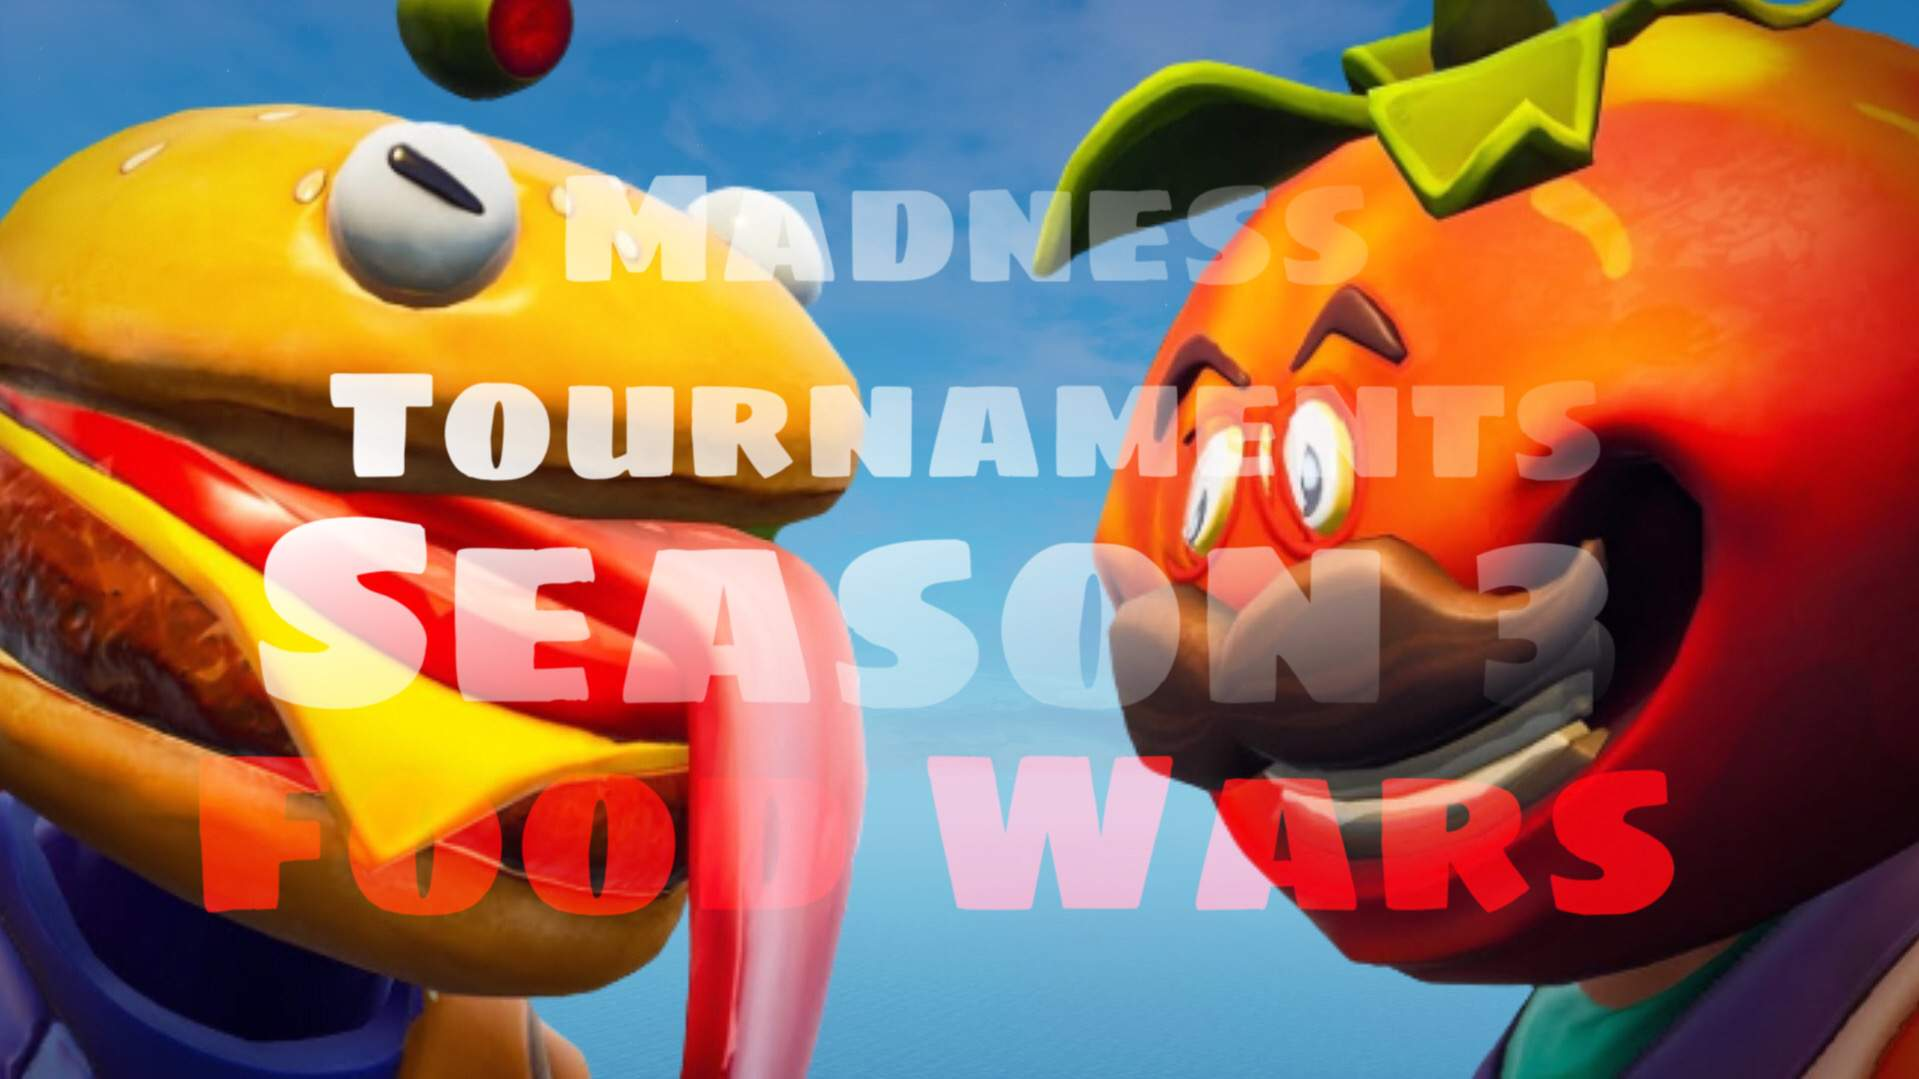 MADNESS TOURNAMENTS SEASON 3